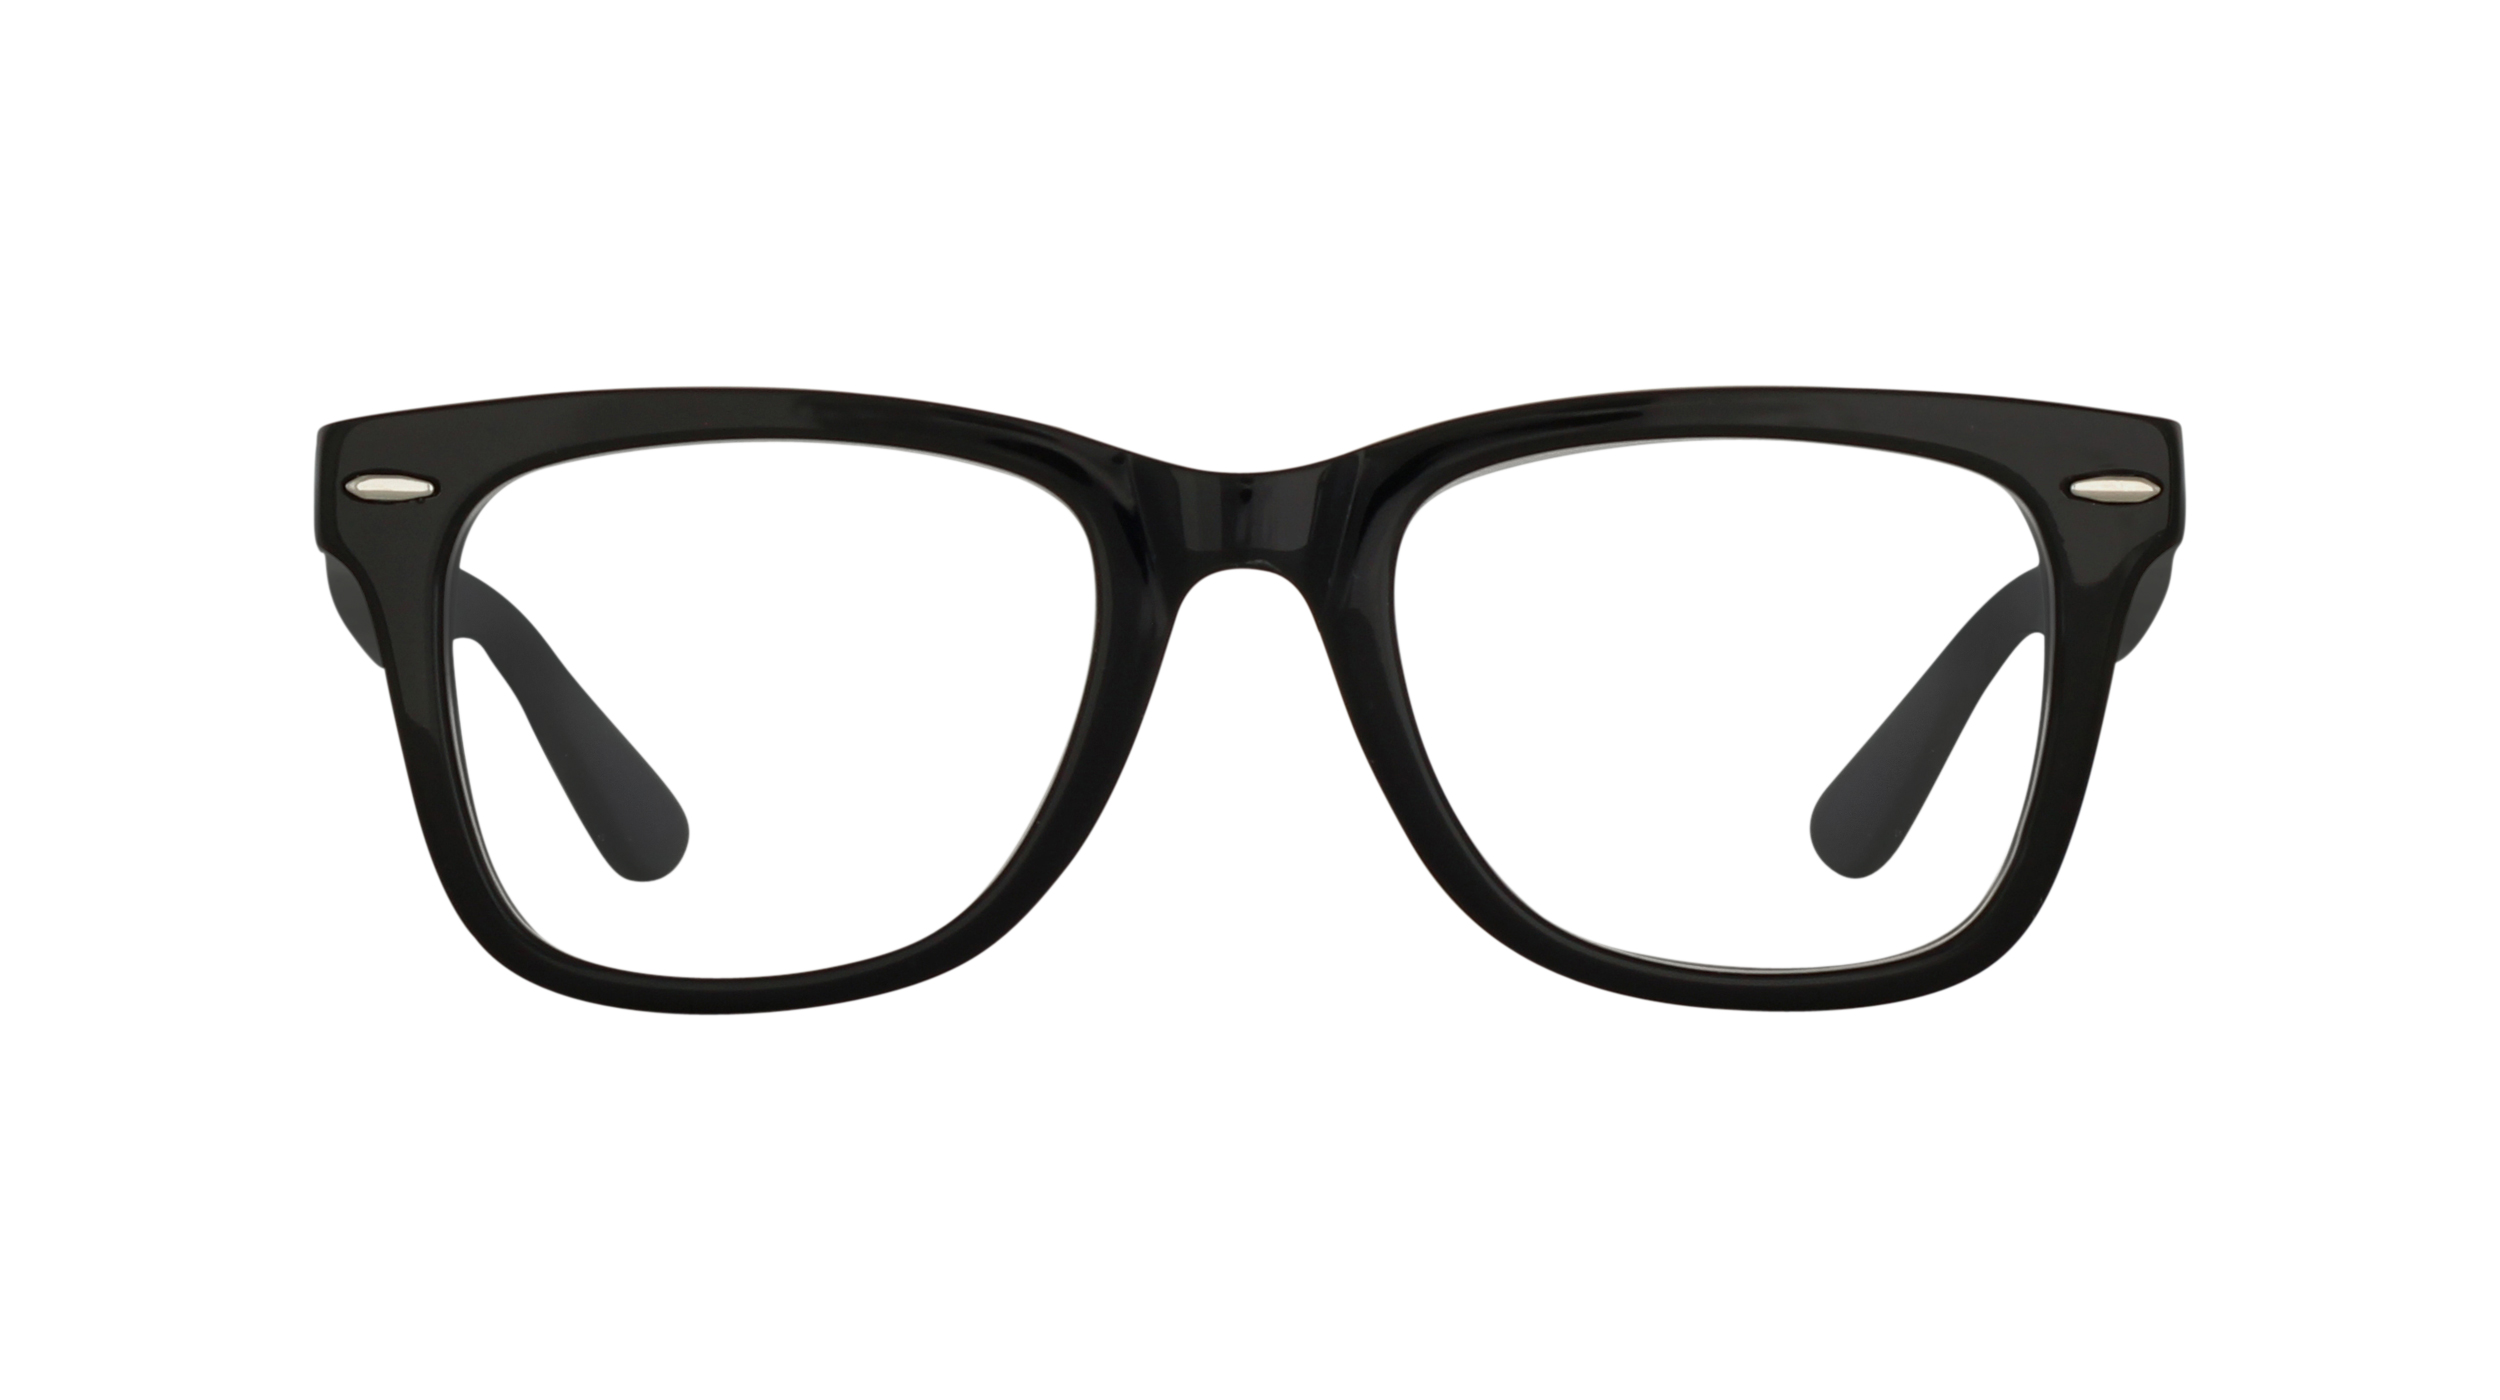 Eyeglasses clip art free clipart images 3 4